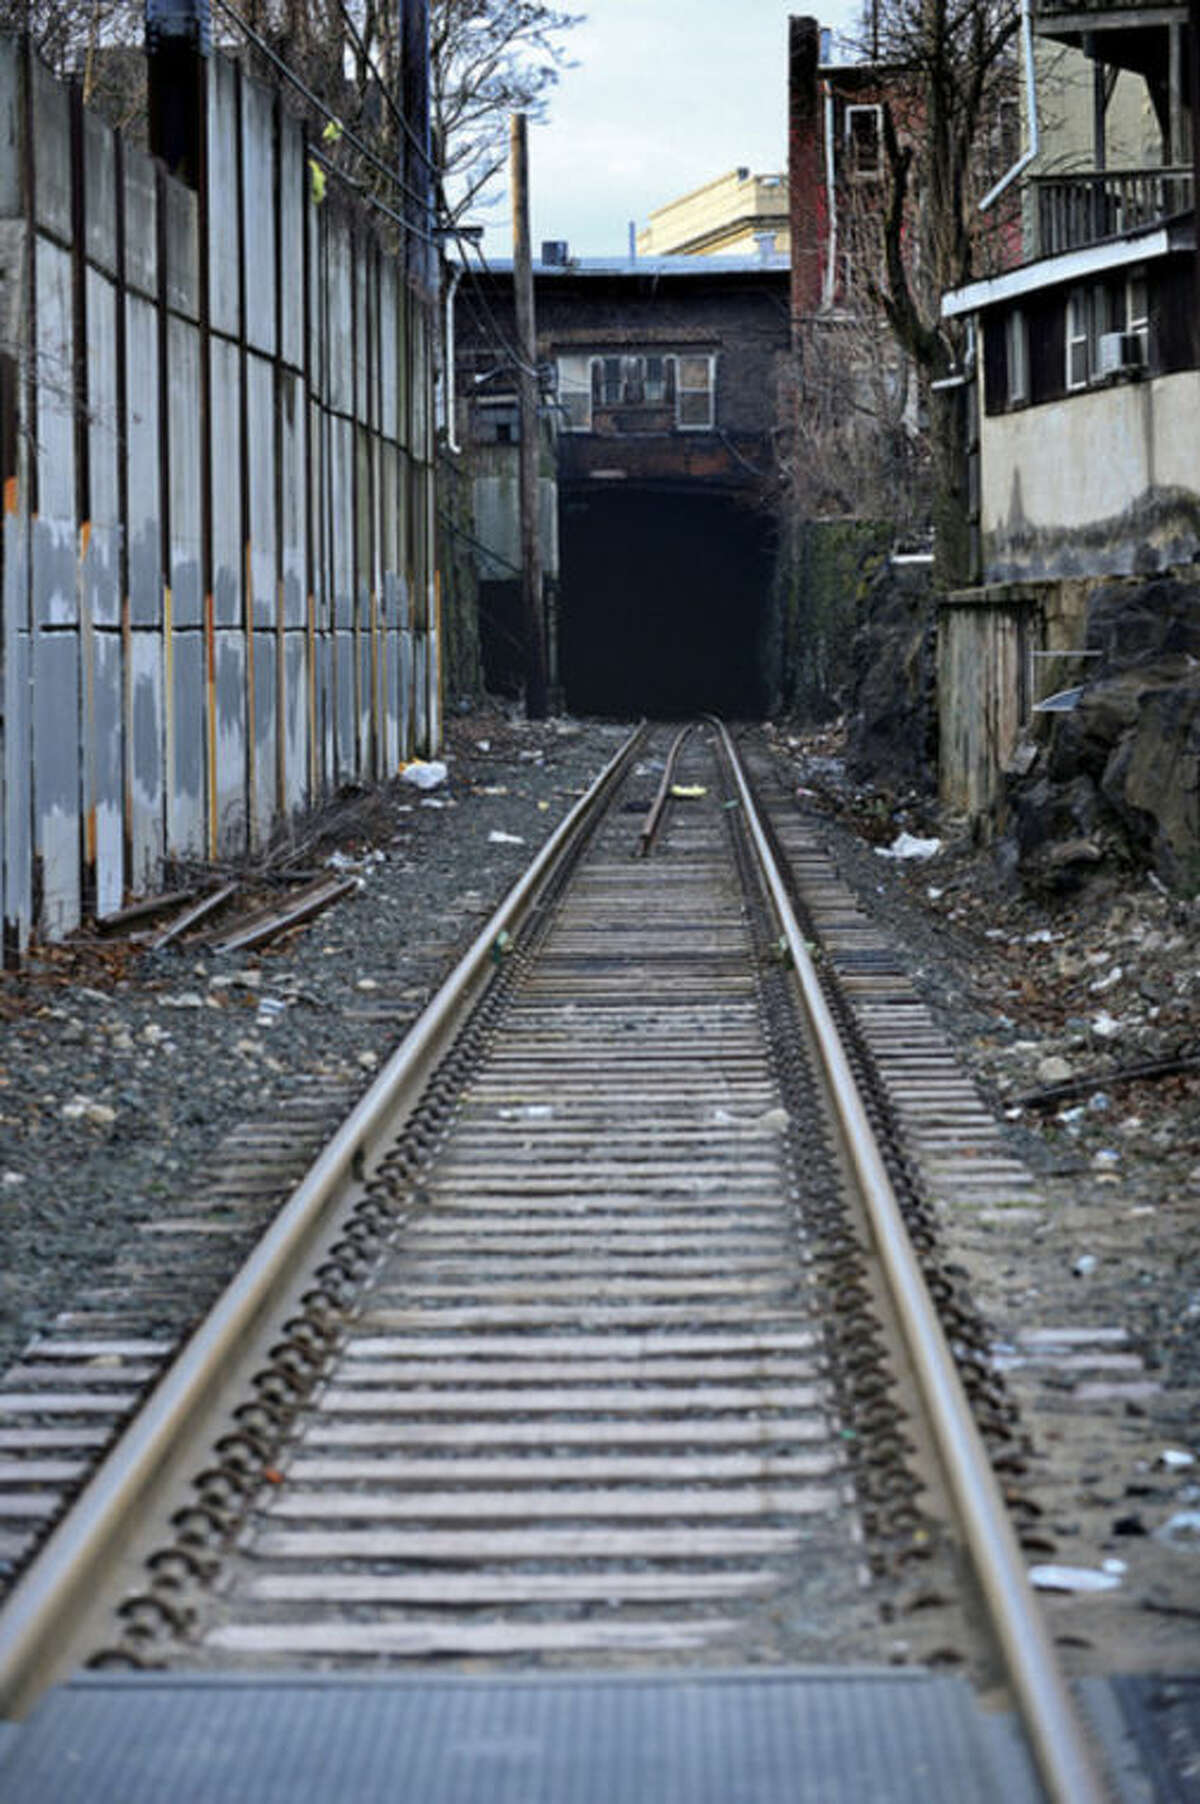 Hour photo / Erik Trautmann ConnDOT proposed location for construction over Metro-North railroad.